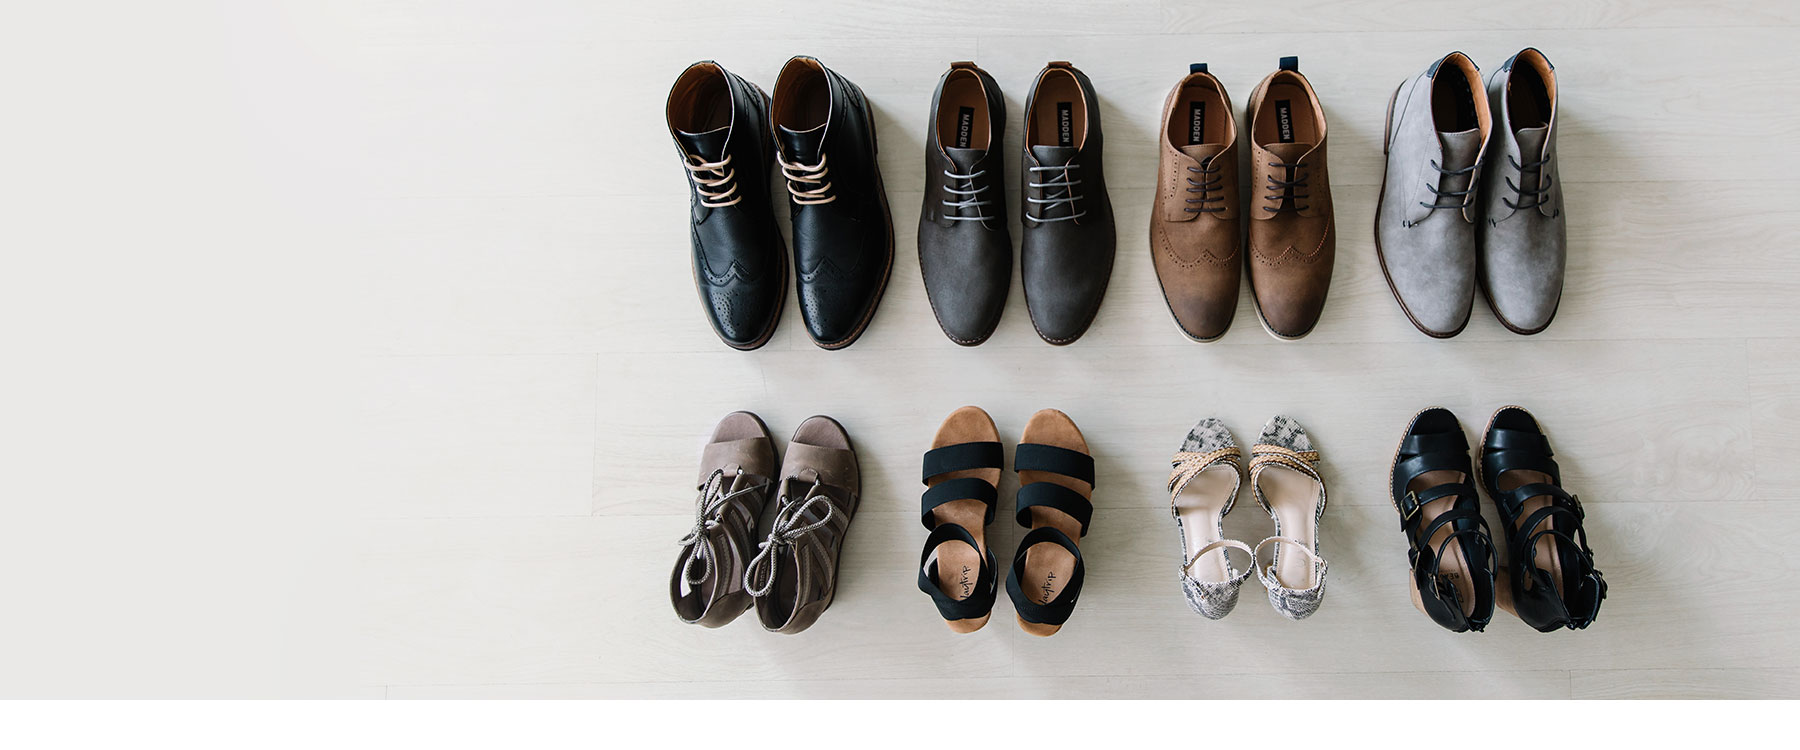 Four pairs of men's dress shoes and four pairs of women's heels